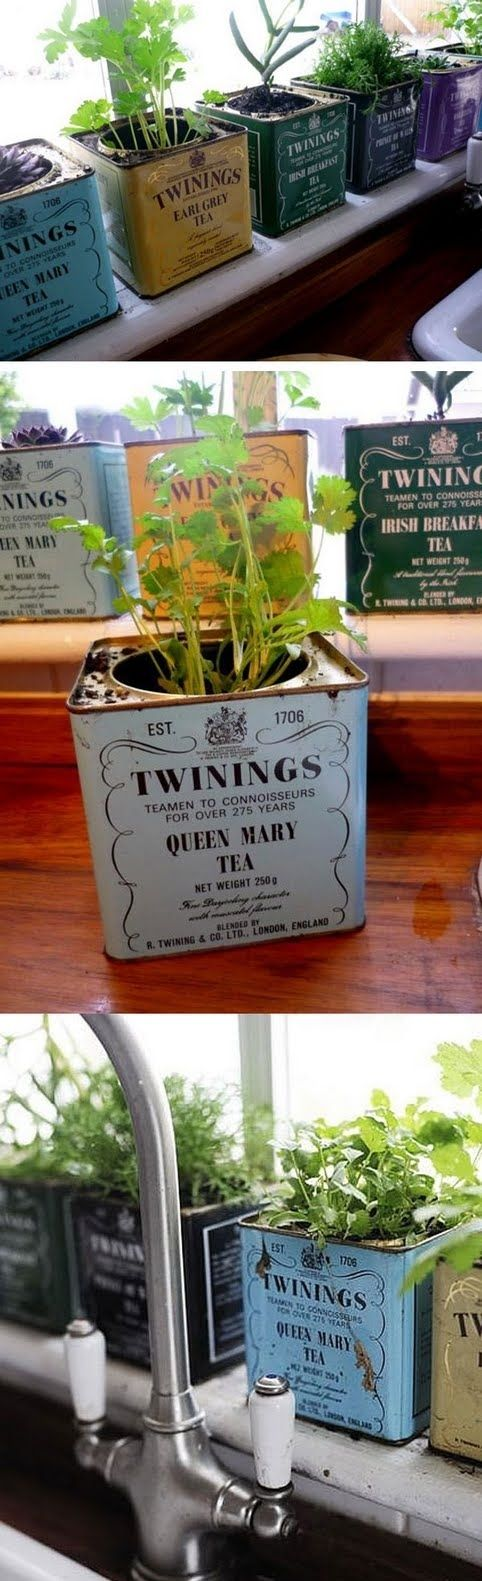 Tea tins turned herb garden: love this! Now I just need to buy some cute tea tins